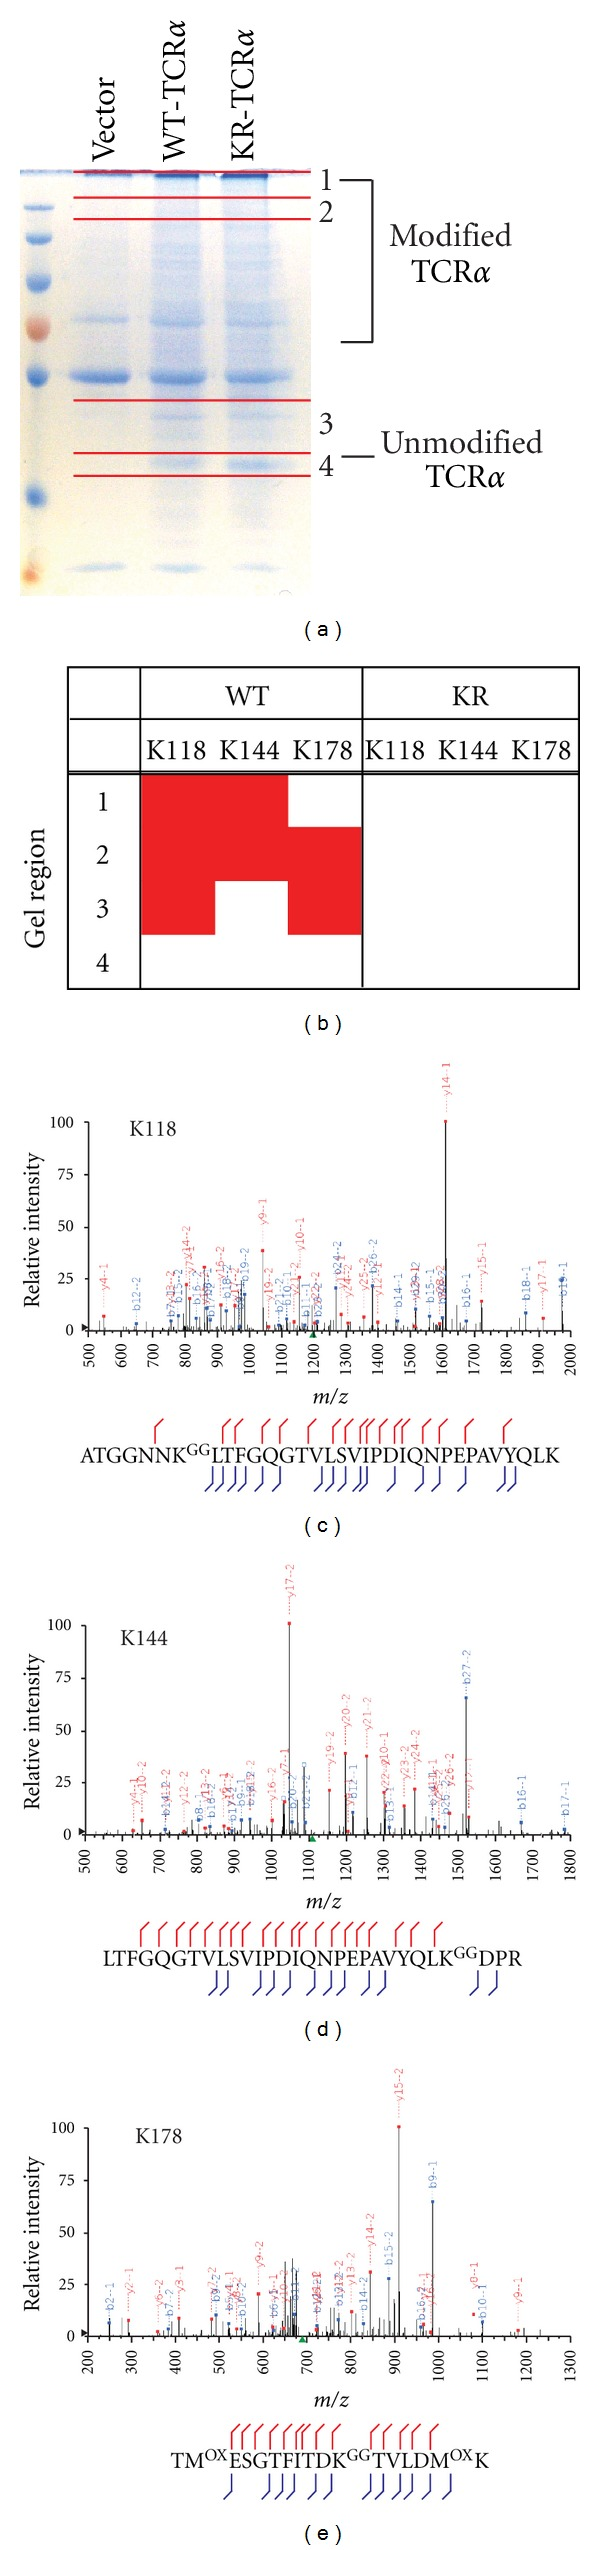 Tandem mass-spectrometry identification of −GG signature peptides from ubiquitinated TCR α on Lys-118, Lys-144, and Lys-178. HEK293T cells were transiently transfected with WT-TCR α or vector alone, incubated with MG132, and then lysed. Lysates were subjected to immunoprecipitation with an anti-HA antibody and examined by SDS-PAGE followed by Coomassie staining. Four regions of the gel were excised and trypsinized as shown in (a). Samples were analyzed by tandem mass-spectrometry and the results are summarized in (b). Peptide spectral matches to −GG signature peptides (ggSP) at Lys-118, Lys-144, or Lys-178 in each region of the gel are indicated by red shading. Representative MS/MS spectra for each of the ggSP are shown: (c) Lys-118, (d) Lys-144, and (e) Lys-178. The peaks are labeled with the fragment ion and its charge state. For example, y14-1 is the singly charged version of y14. b- and y-fragment ions are denoted by blue and red, respectively. Green squares denote precursor ions, multiply charged fragment ions, or predictable neutral loss ions accounted for during manual inspection of MS/MS data.